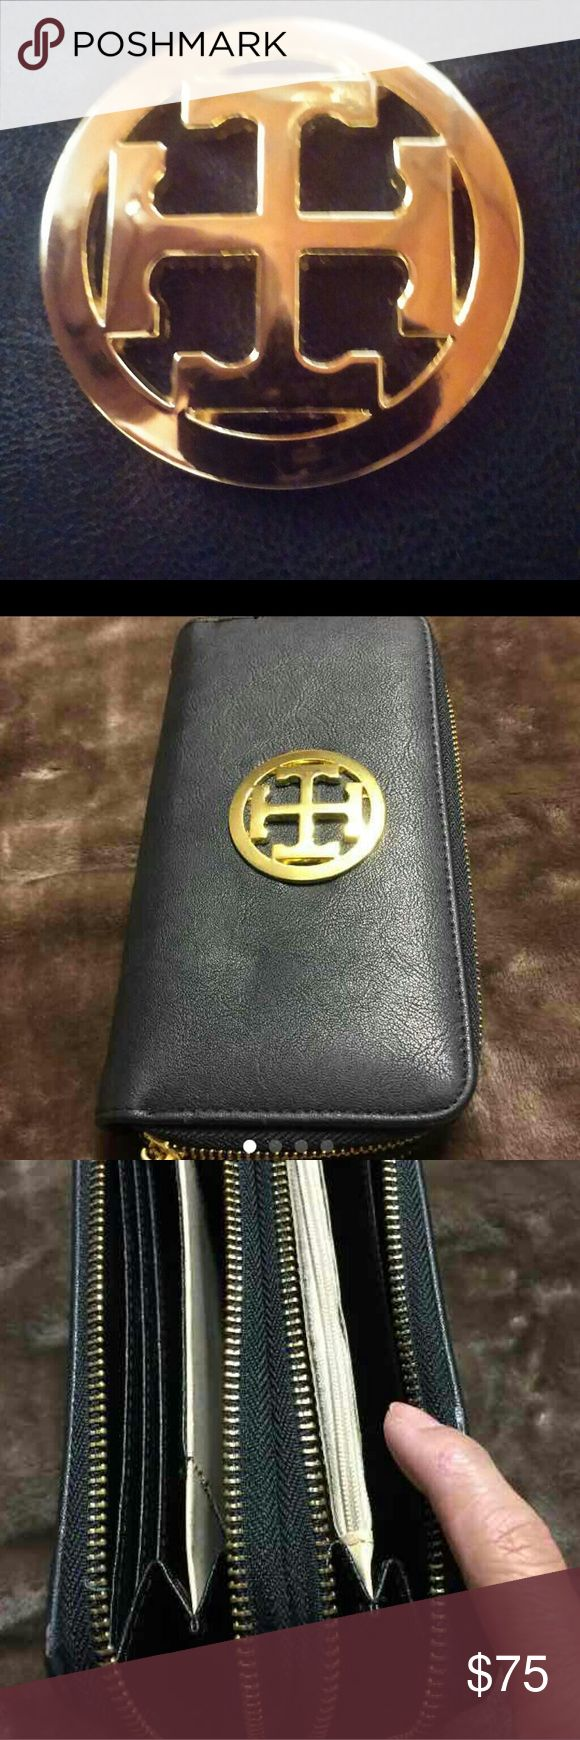 BLACK LEATHER WALLET I bought this and seen it's a Tory Burch REPLICA. In spite of that, this wallet is LIKE NEW, and very beautiful as well.  Black Leather. Very spacious. It has 2 separate zipped compartments. 12 card slots,  a zippered pouch for change.  4 slots for bills or whatever you wish to carry.  Could definitely hold a phone.  Has an eyelet for a strap,  but one isn't included. Could be taken to a shoe repair or leather shop and attach a strap for cheap.  I'm just looking to…